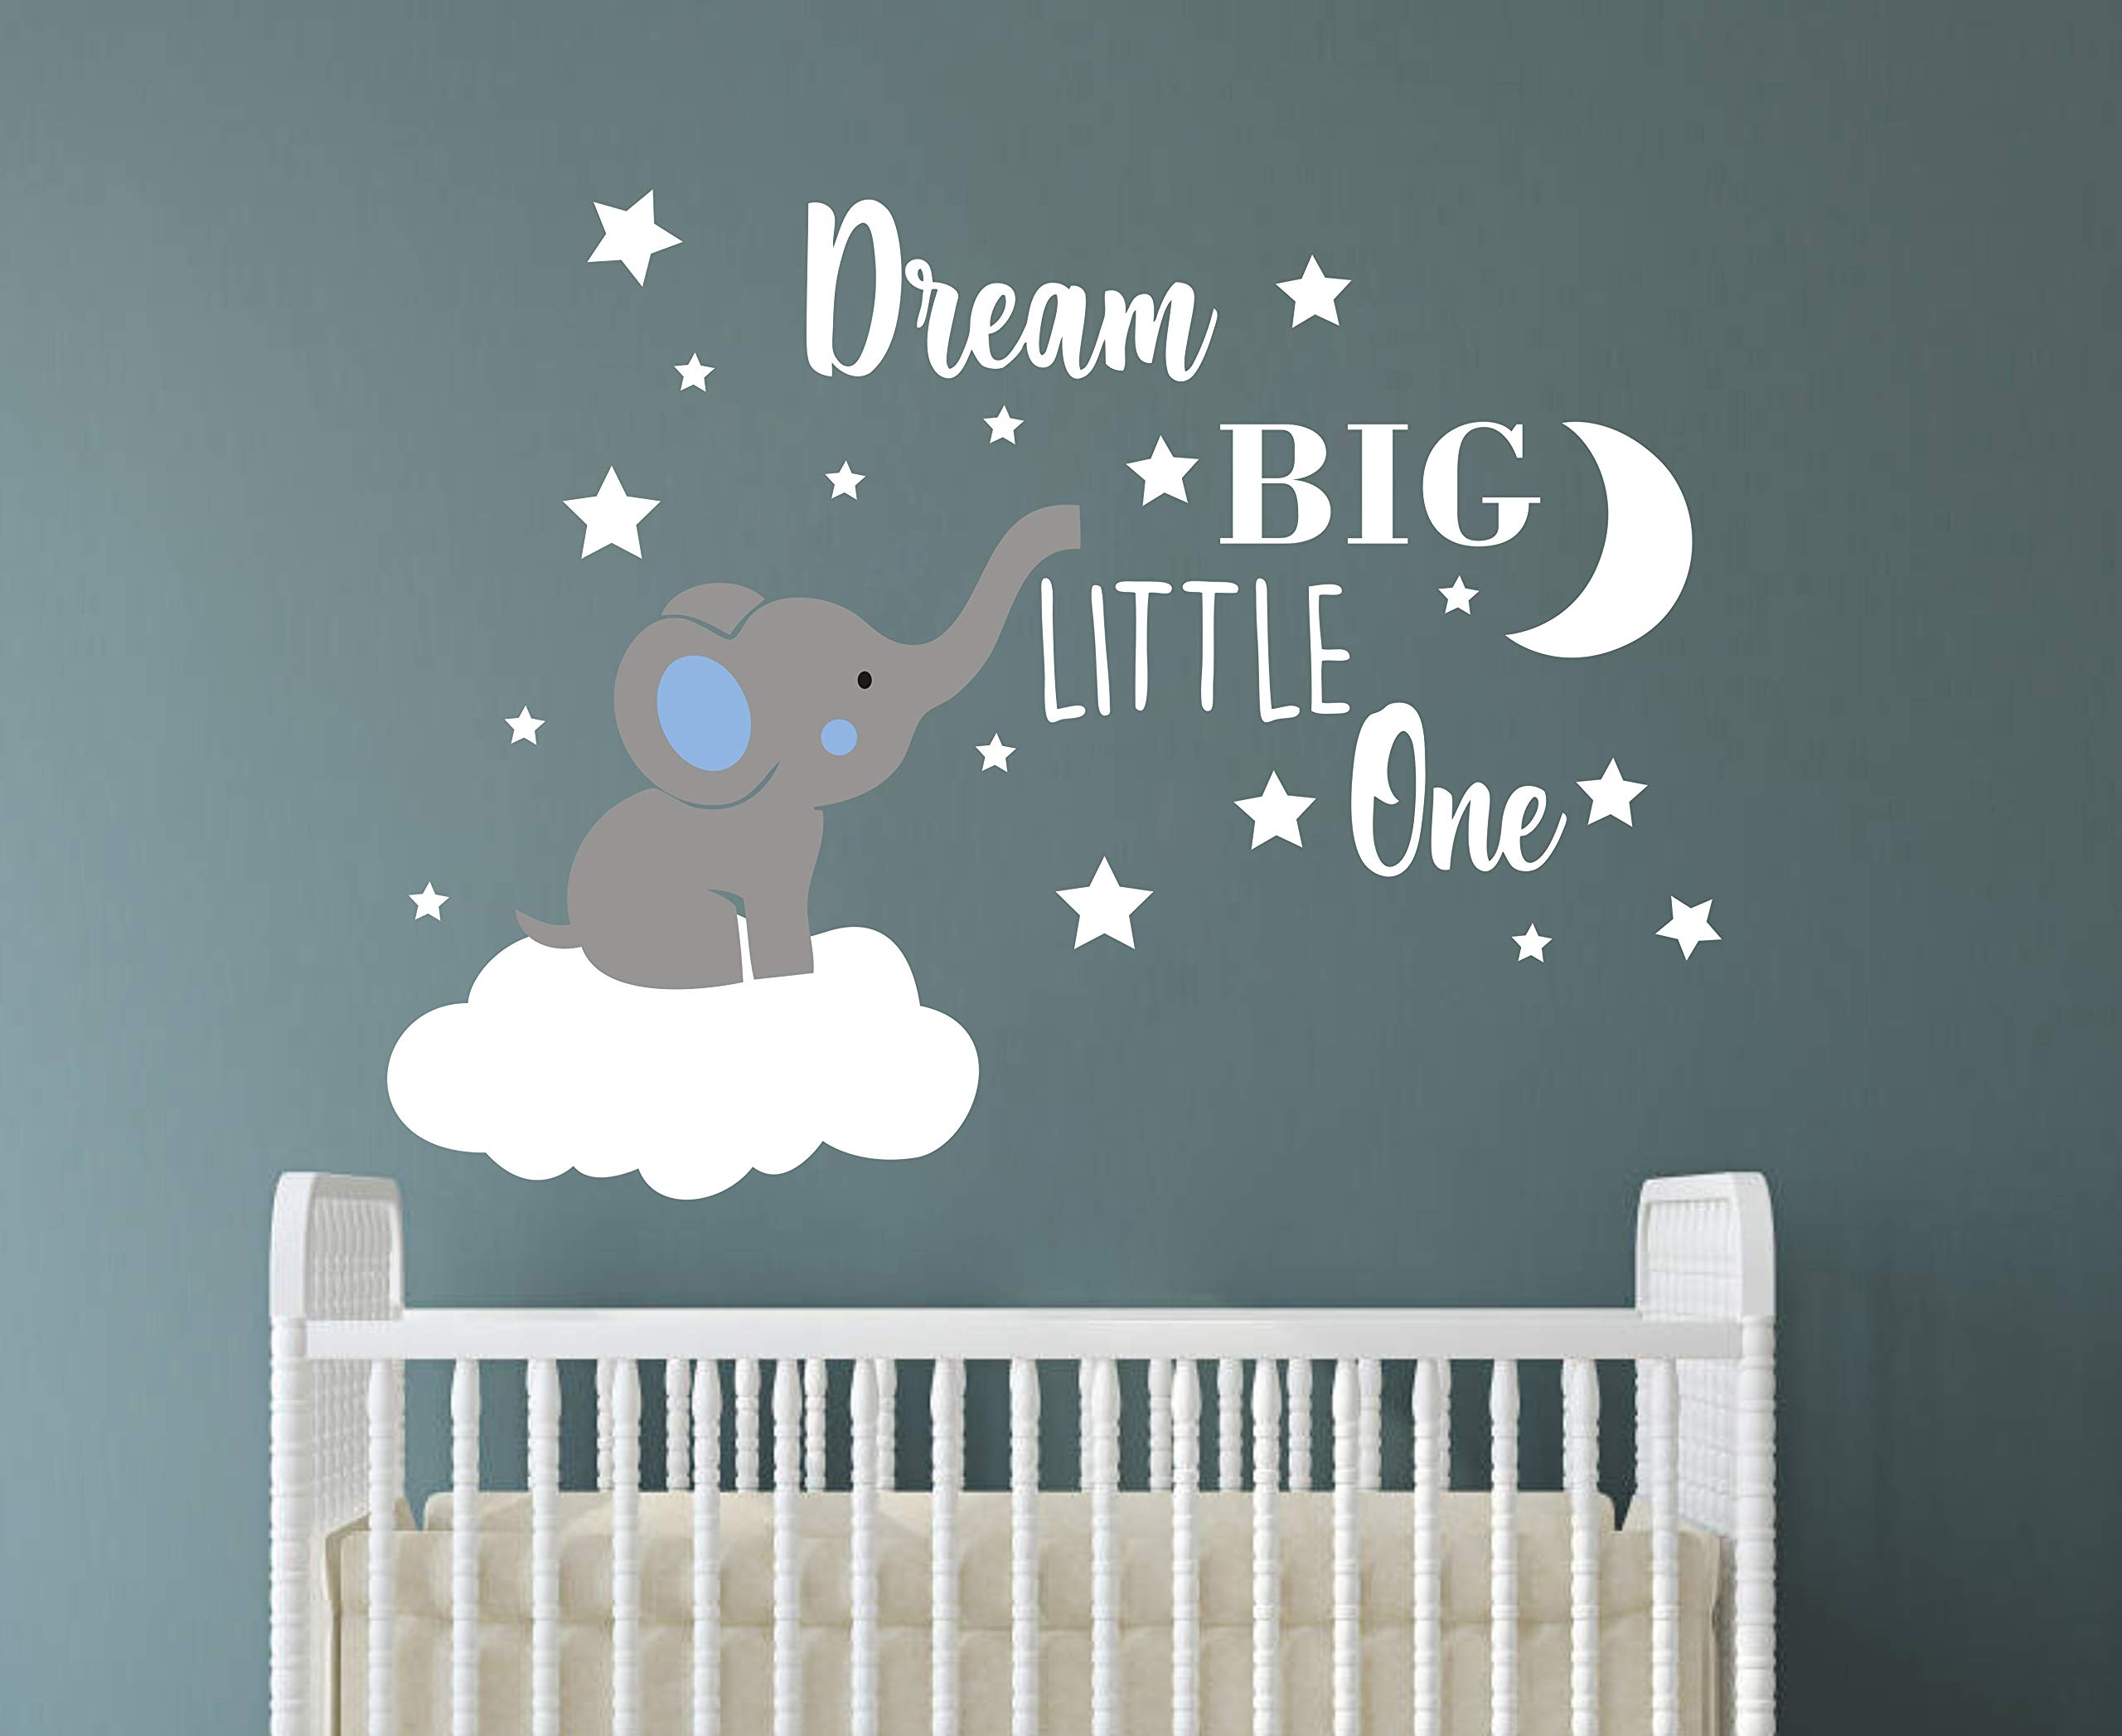 Dream Big Little One Elephant Wall Decal, Quote Wall Stickers, Baby Room Wall Decor, Vinyl Wall Decals for Children Baby Kids Boy Girl Bedroom Nursery Decor(Y42) (Blue,White(Boy)) by GESTYZ